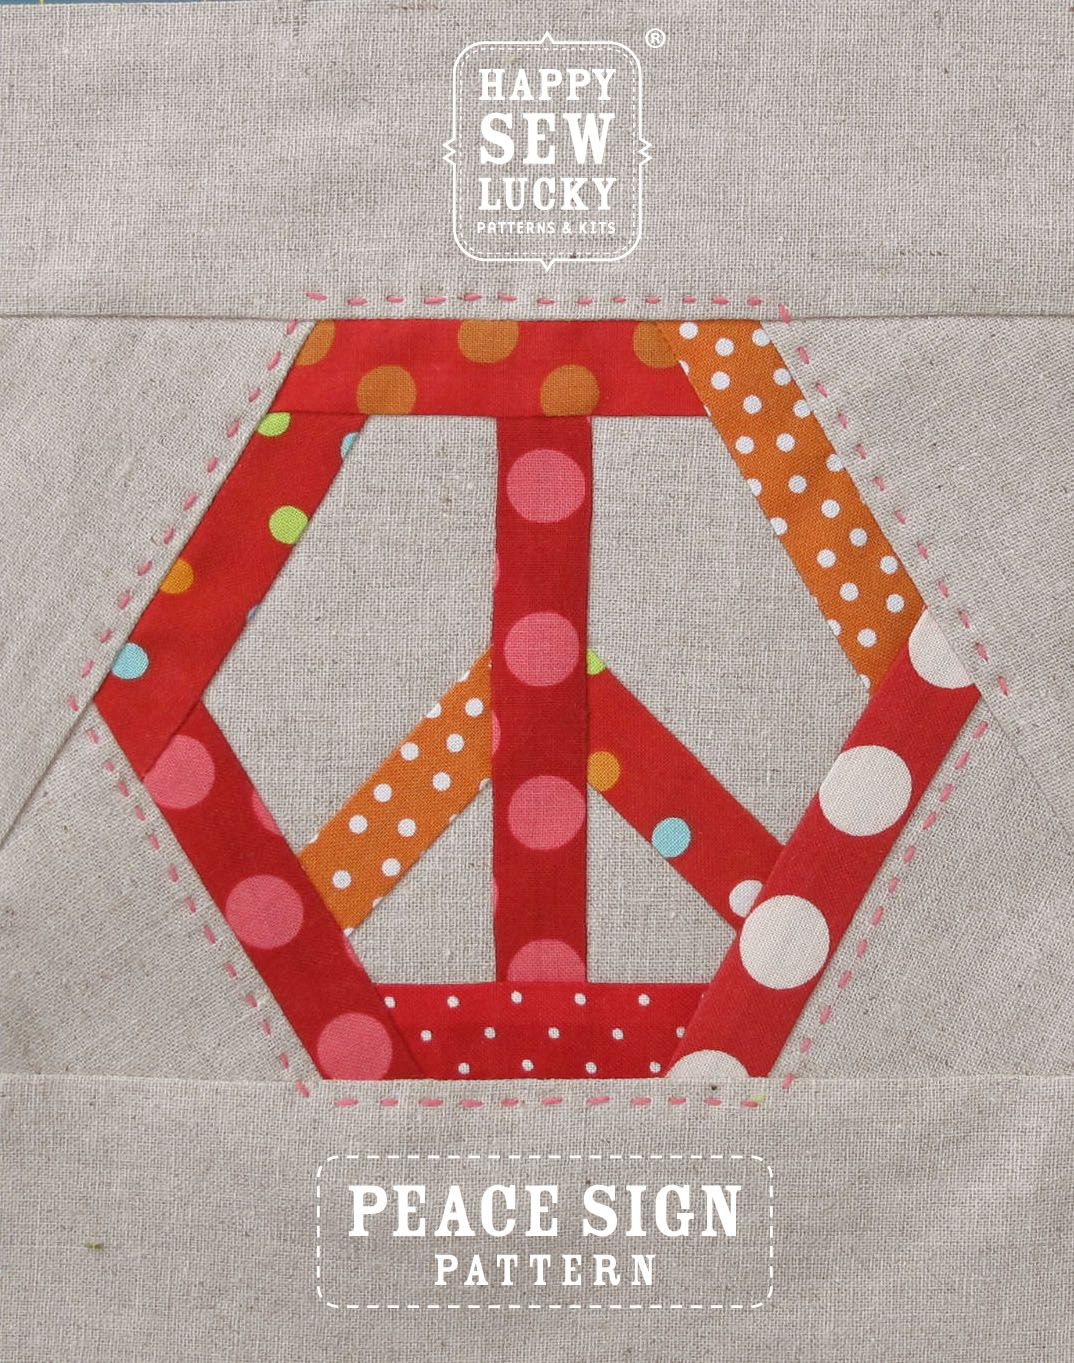 Peace Sign quilt pattern   Happy Sew Lucky